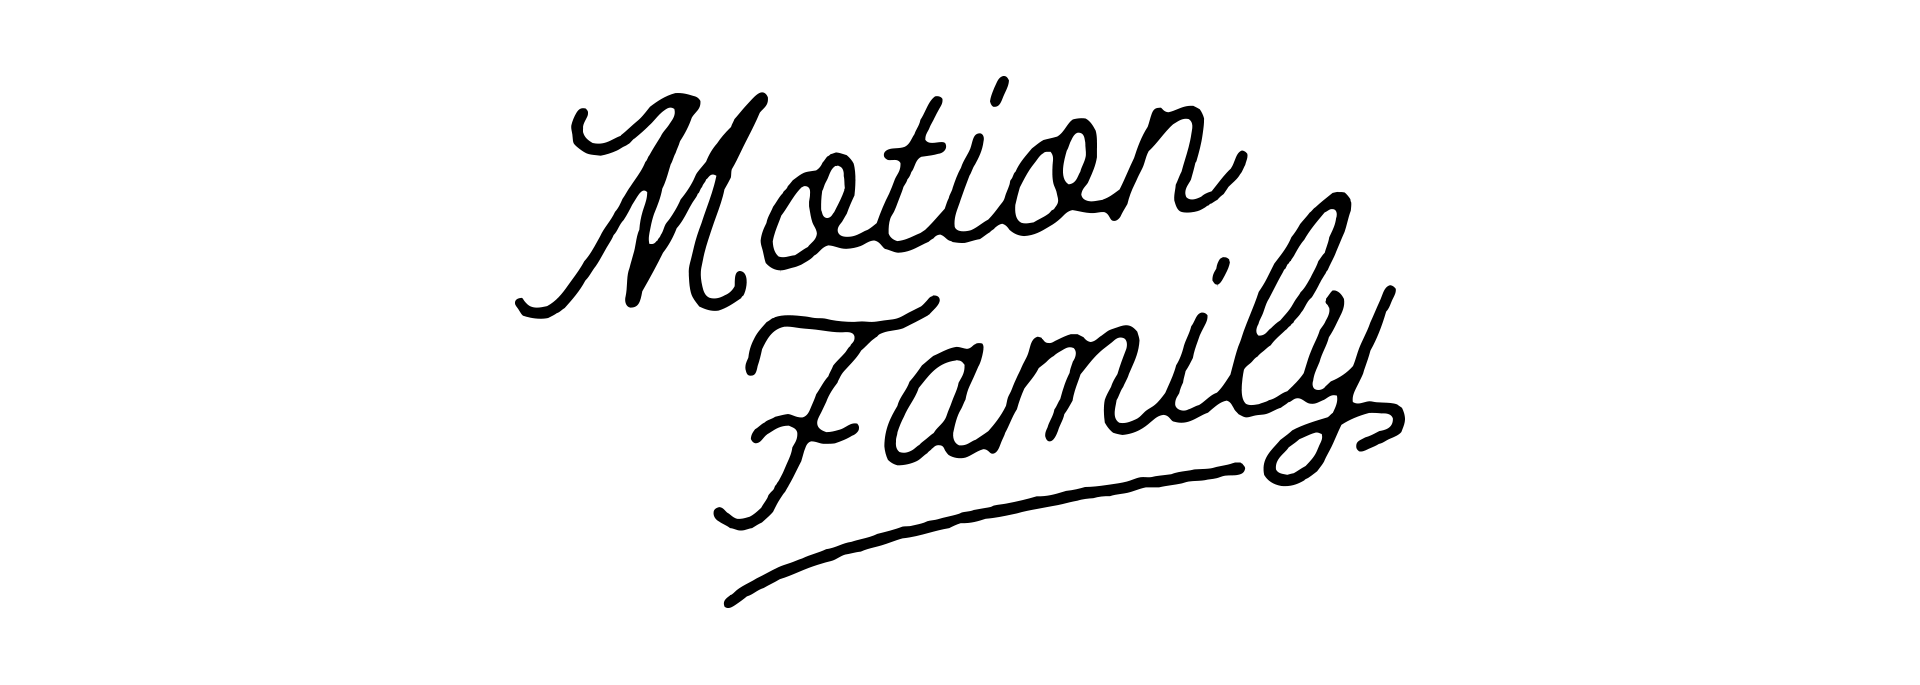 Motion Family channel